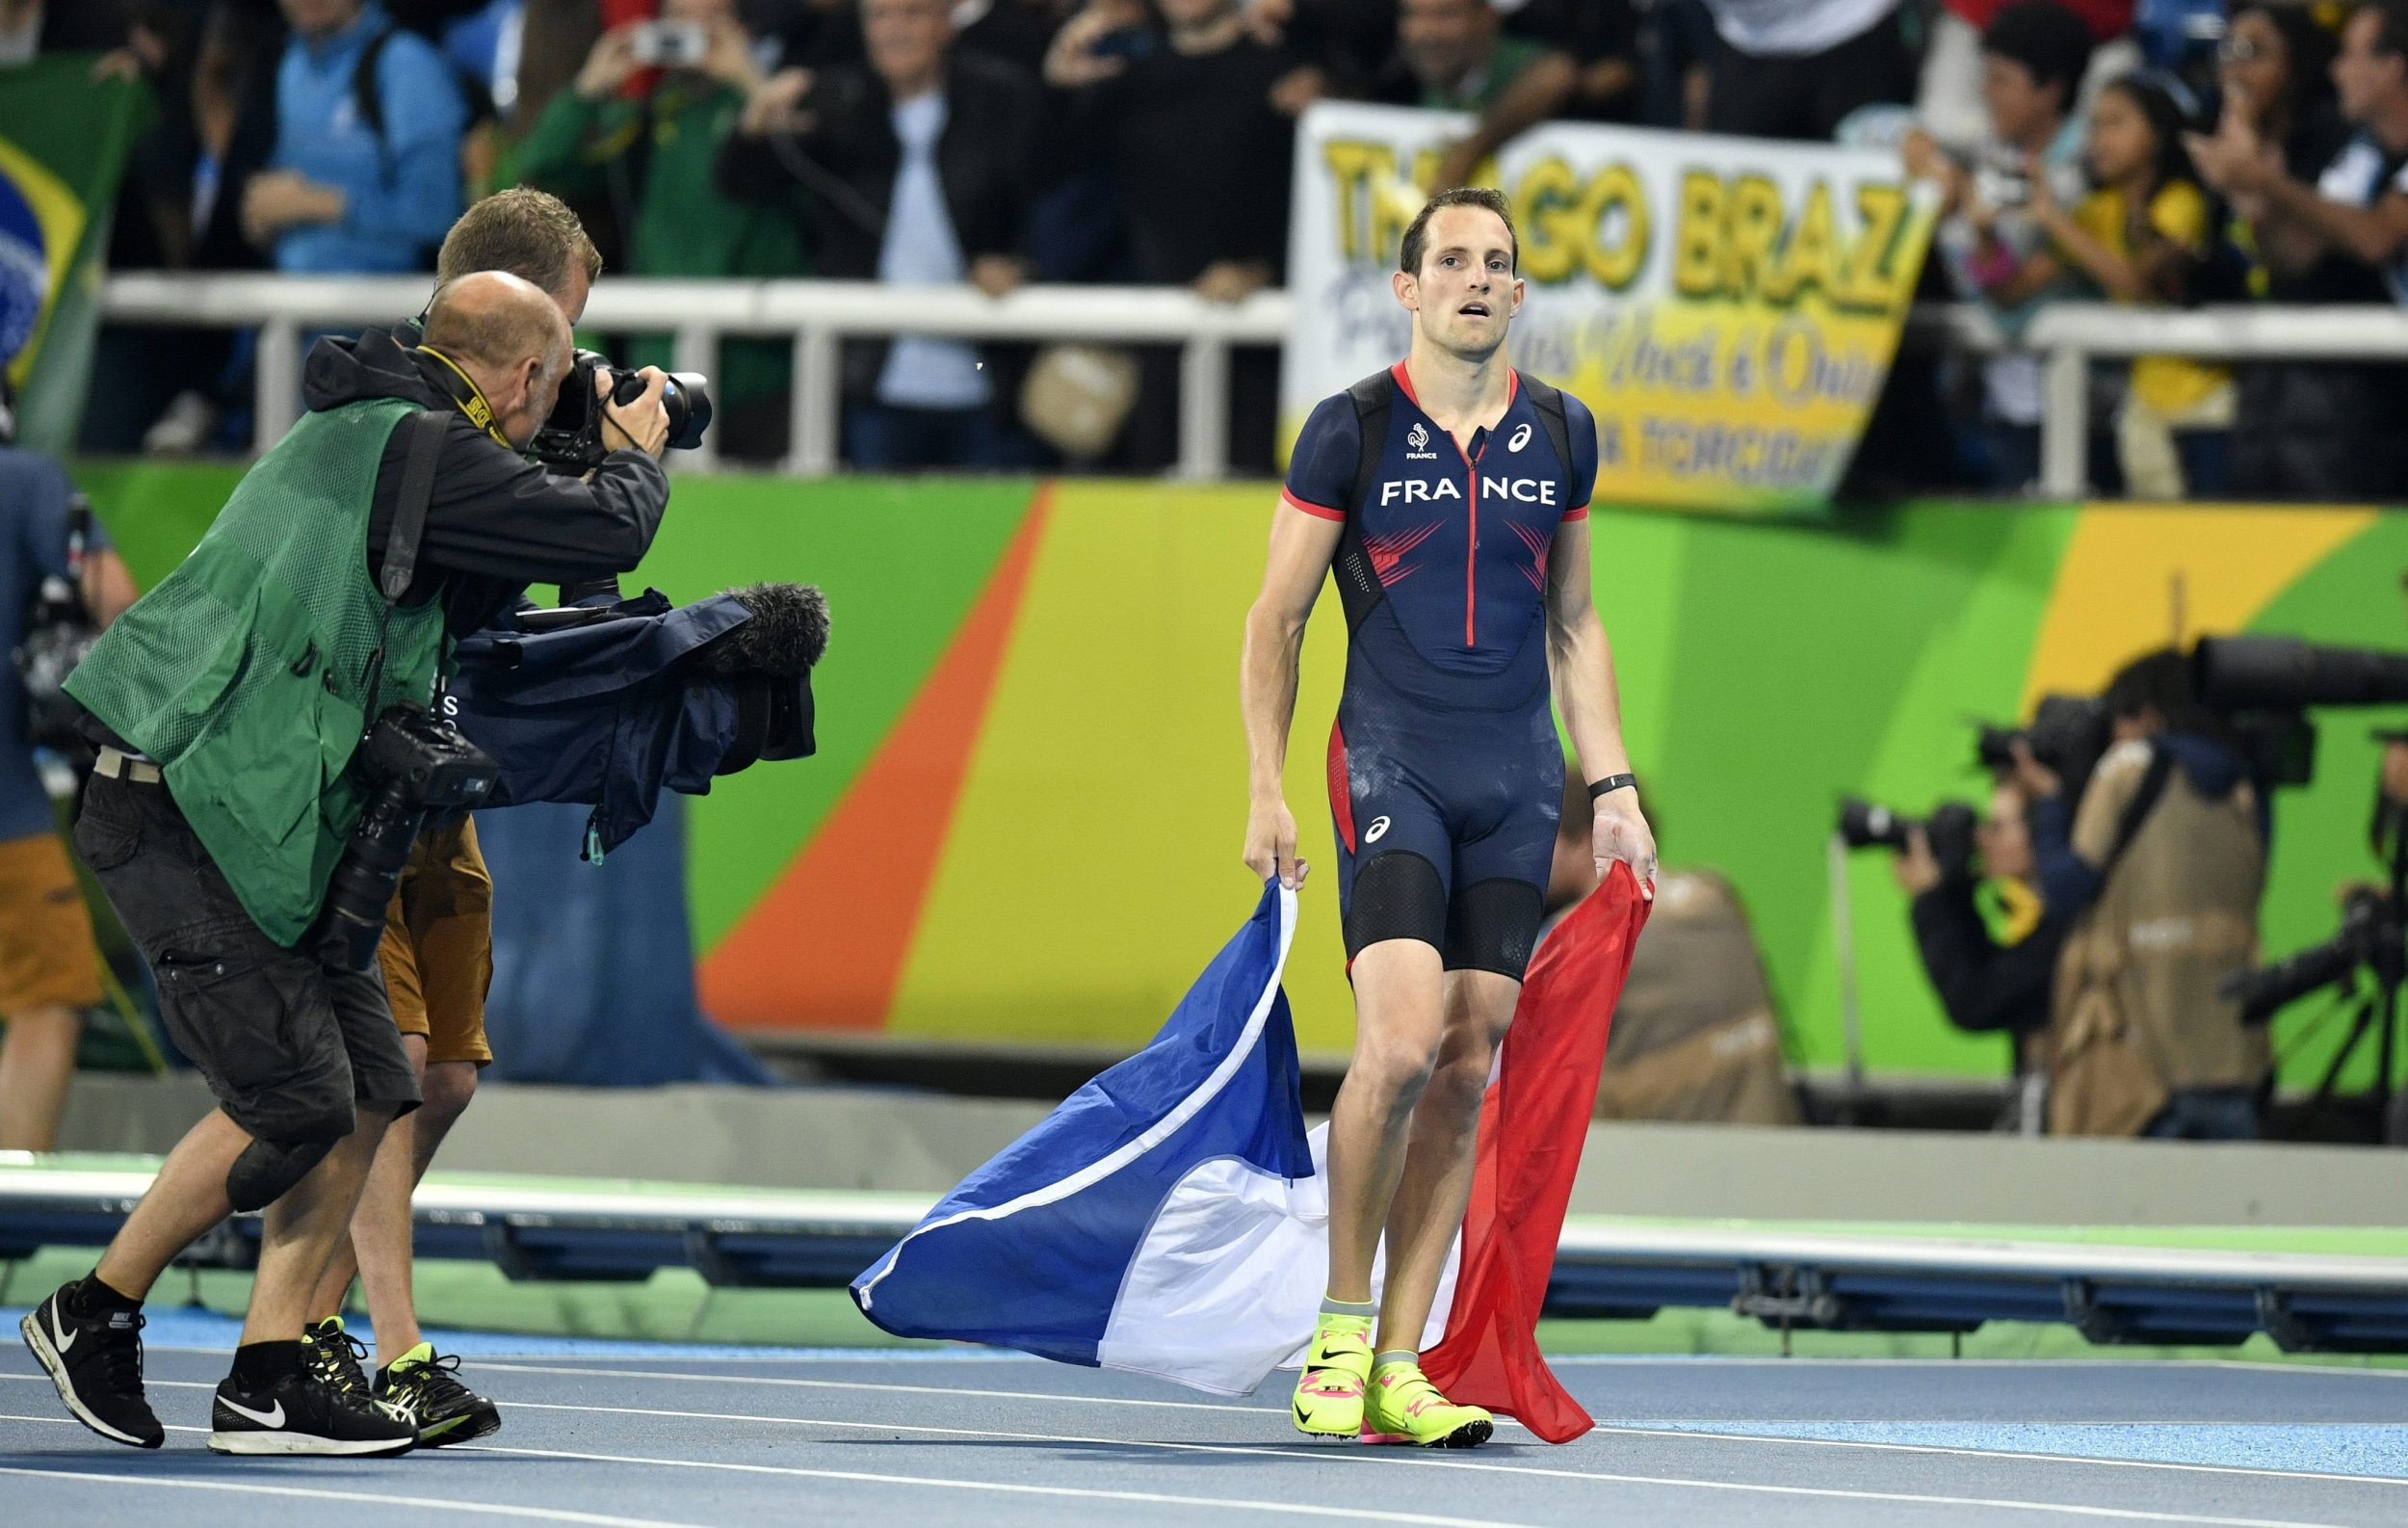 epa05488961 Renaud Lavillenie of France at the end of the Men's Pole Vault final of the Rio 2016 Olympic Games Athletics, Track and Field events at the Olympic Stadium in Rio de Janeiro, Brazil, 15 August 2016. Lavillenie placed second. EPA/FRANCK ROBICHON